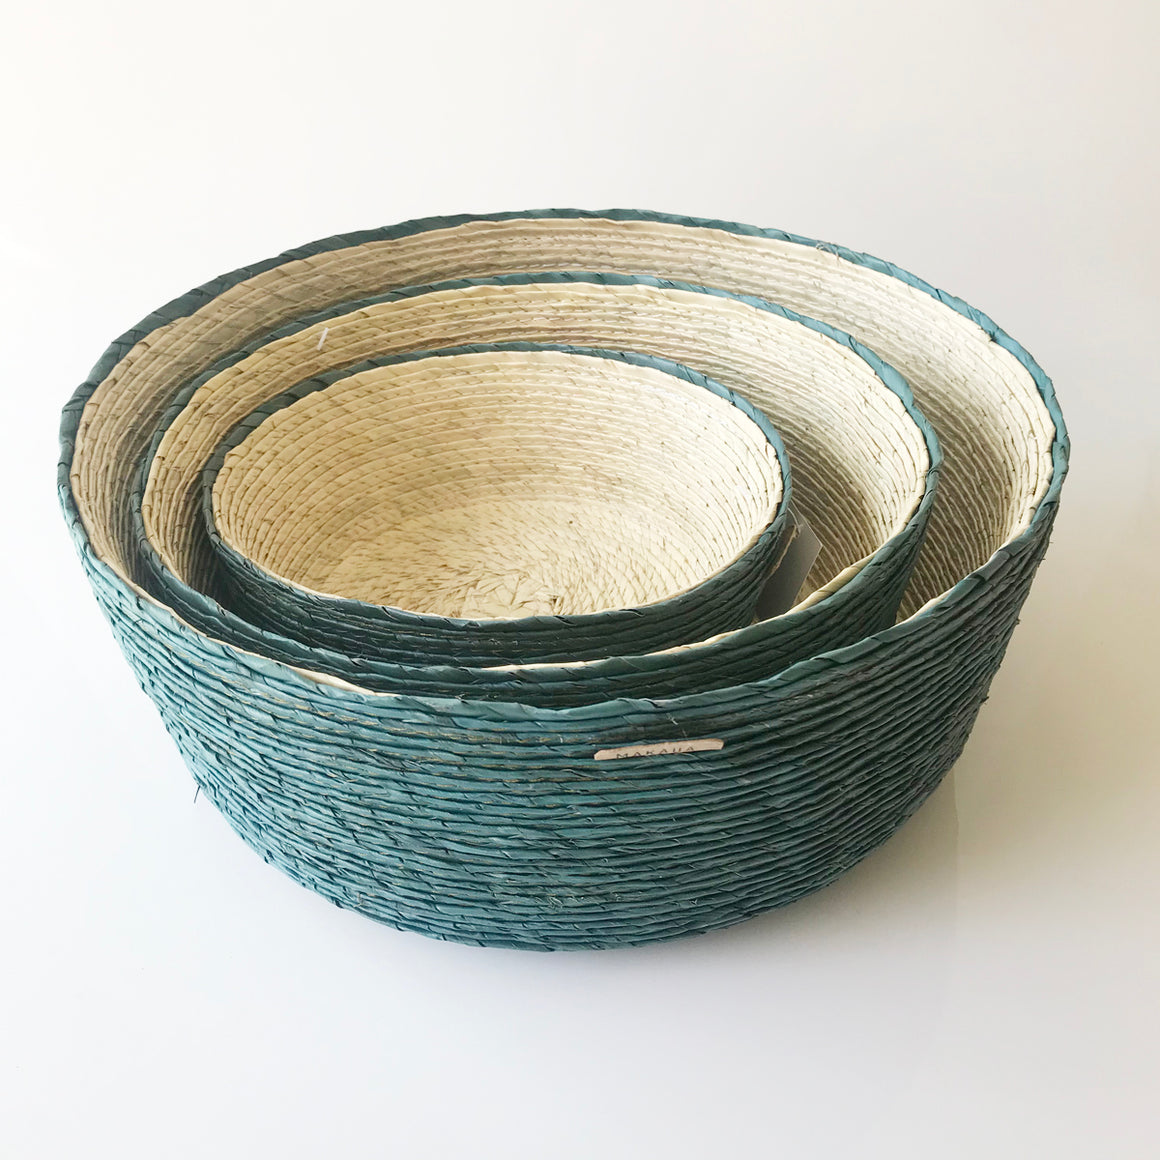 Emerald Nesting Baskets